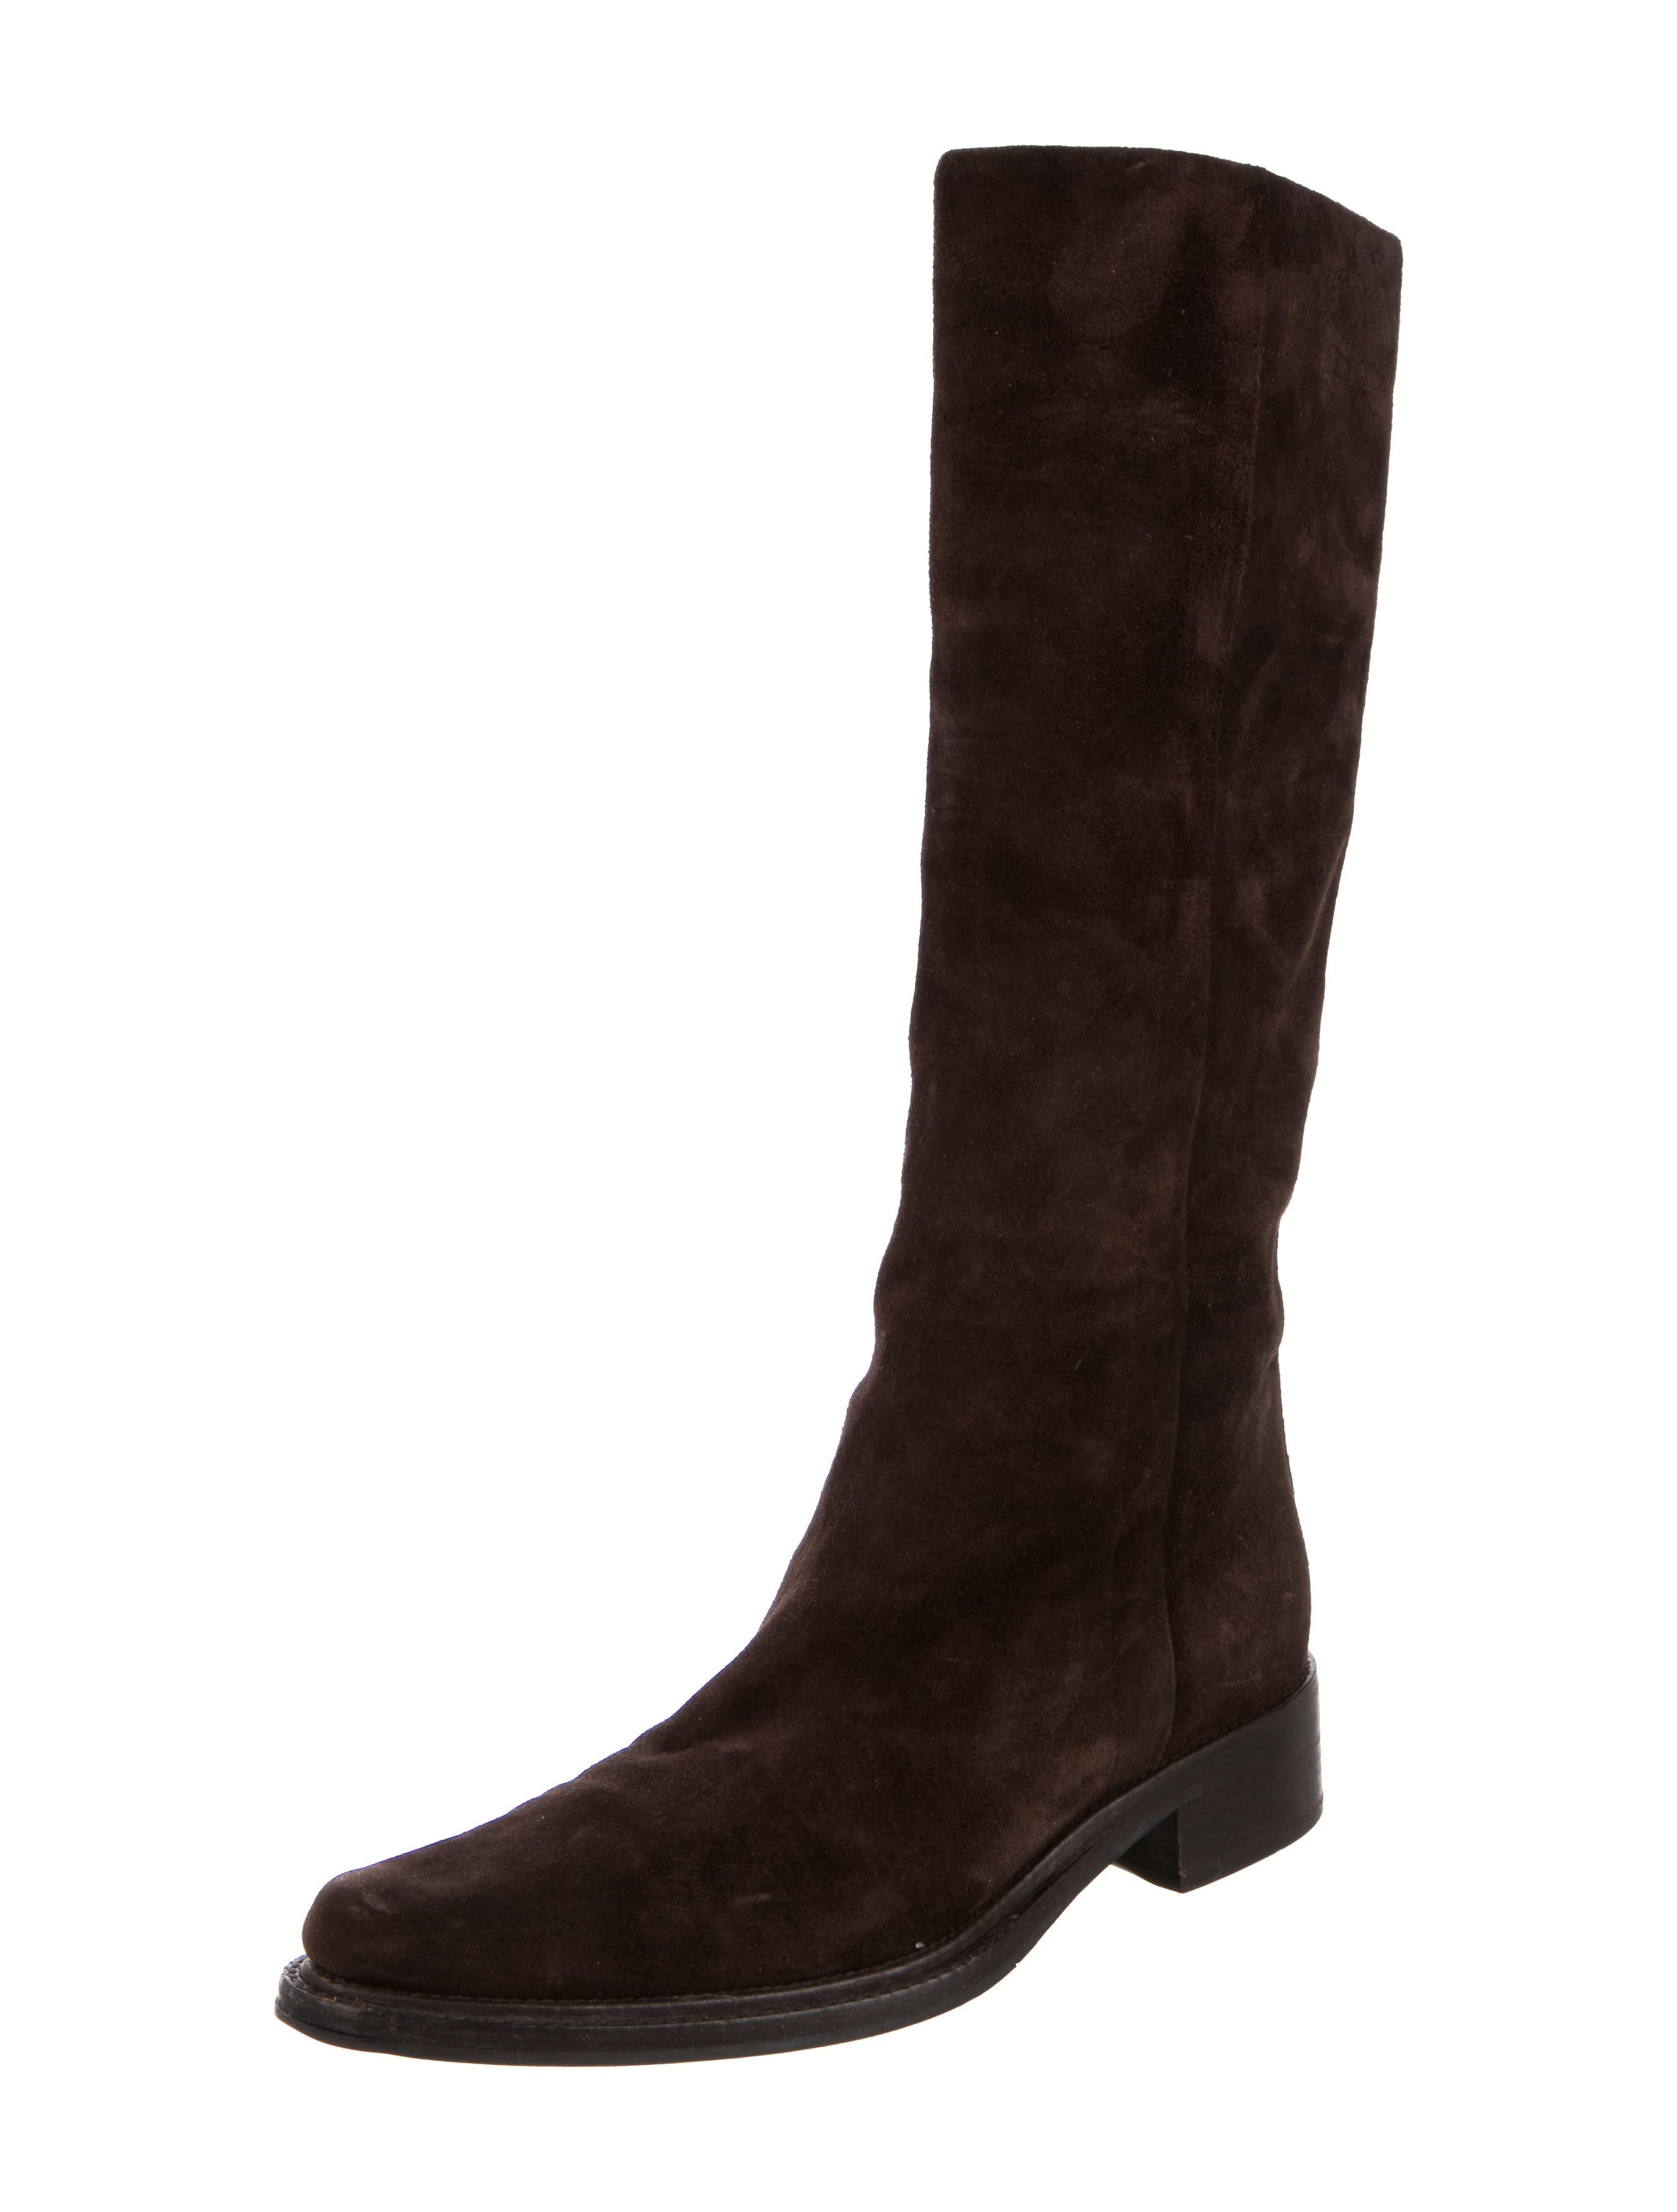 prada knee high suede boots shoes pra113631 the realreal